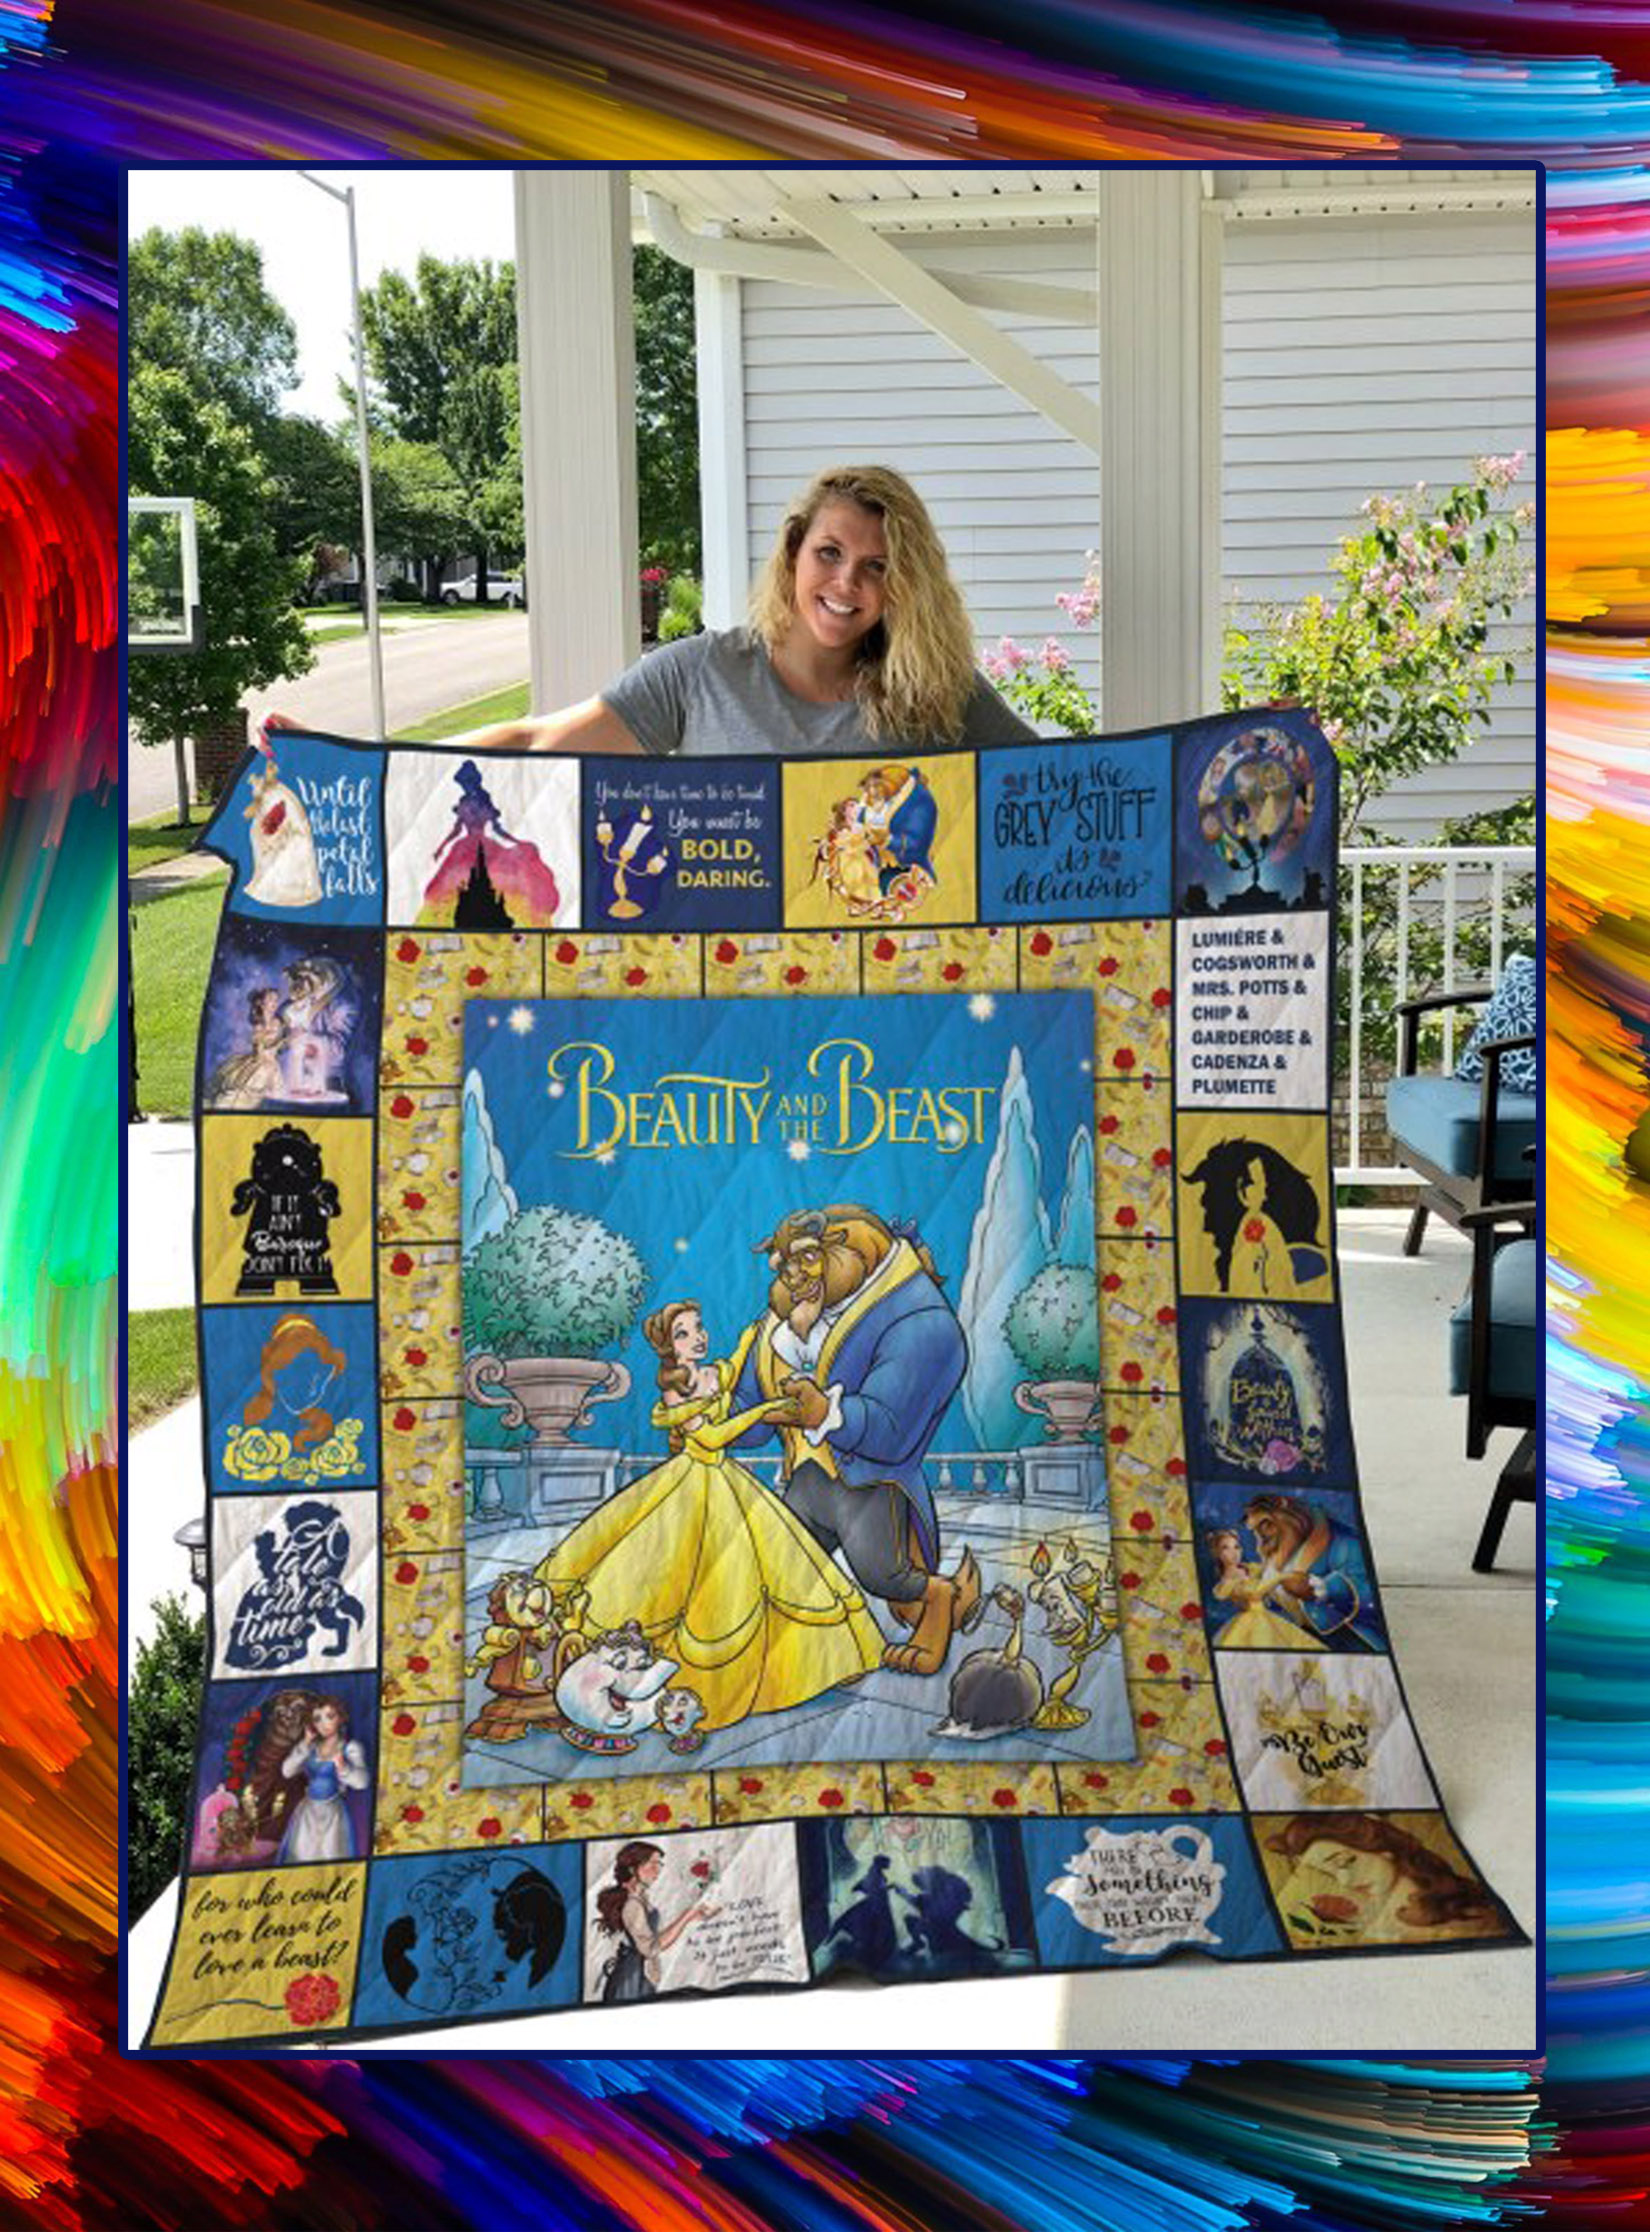 Beauty and the beast quilt blanket - king